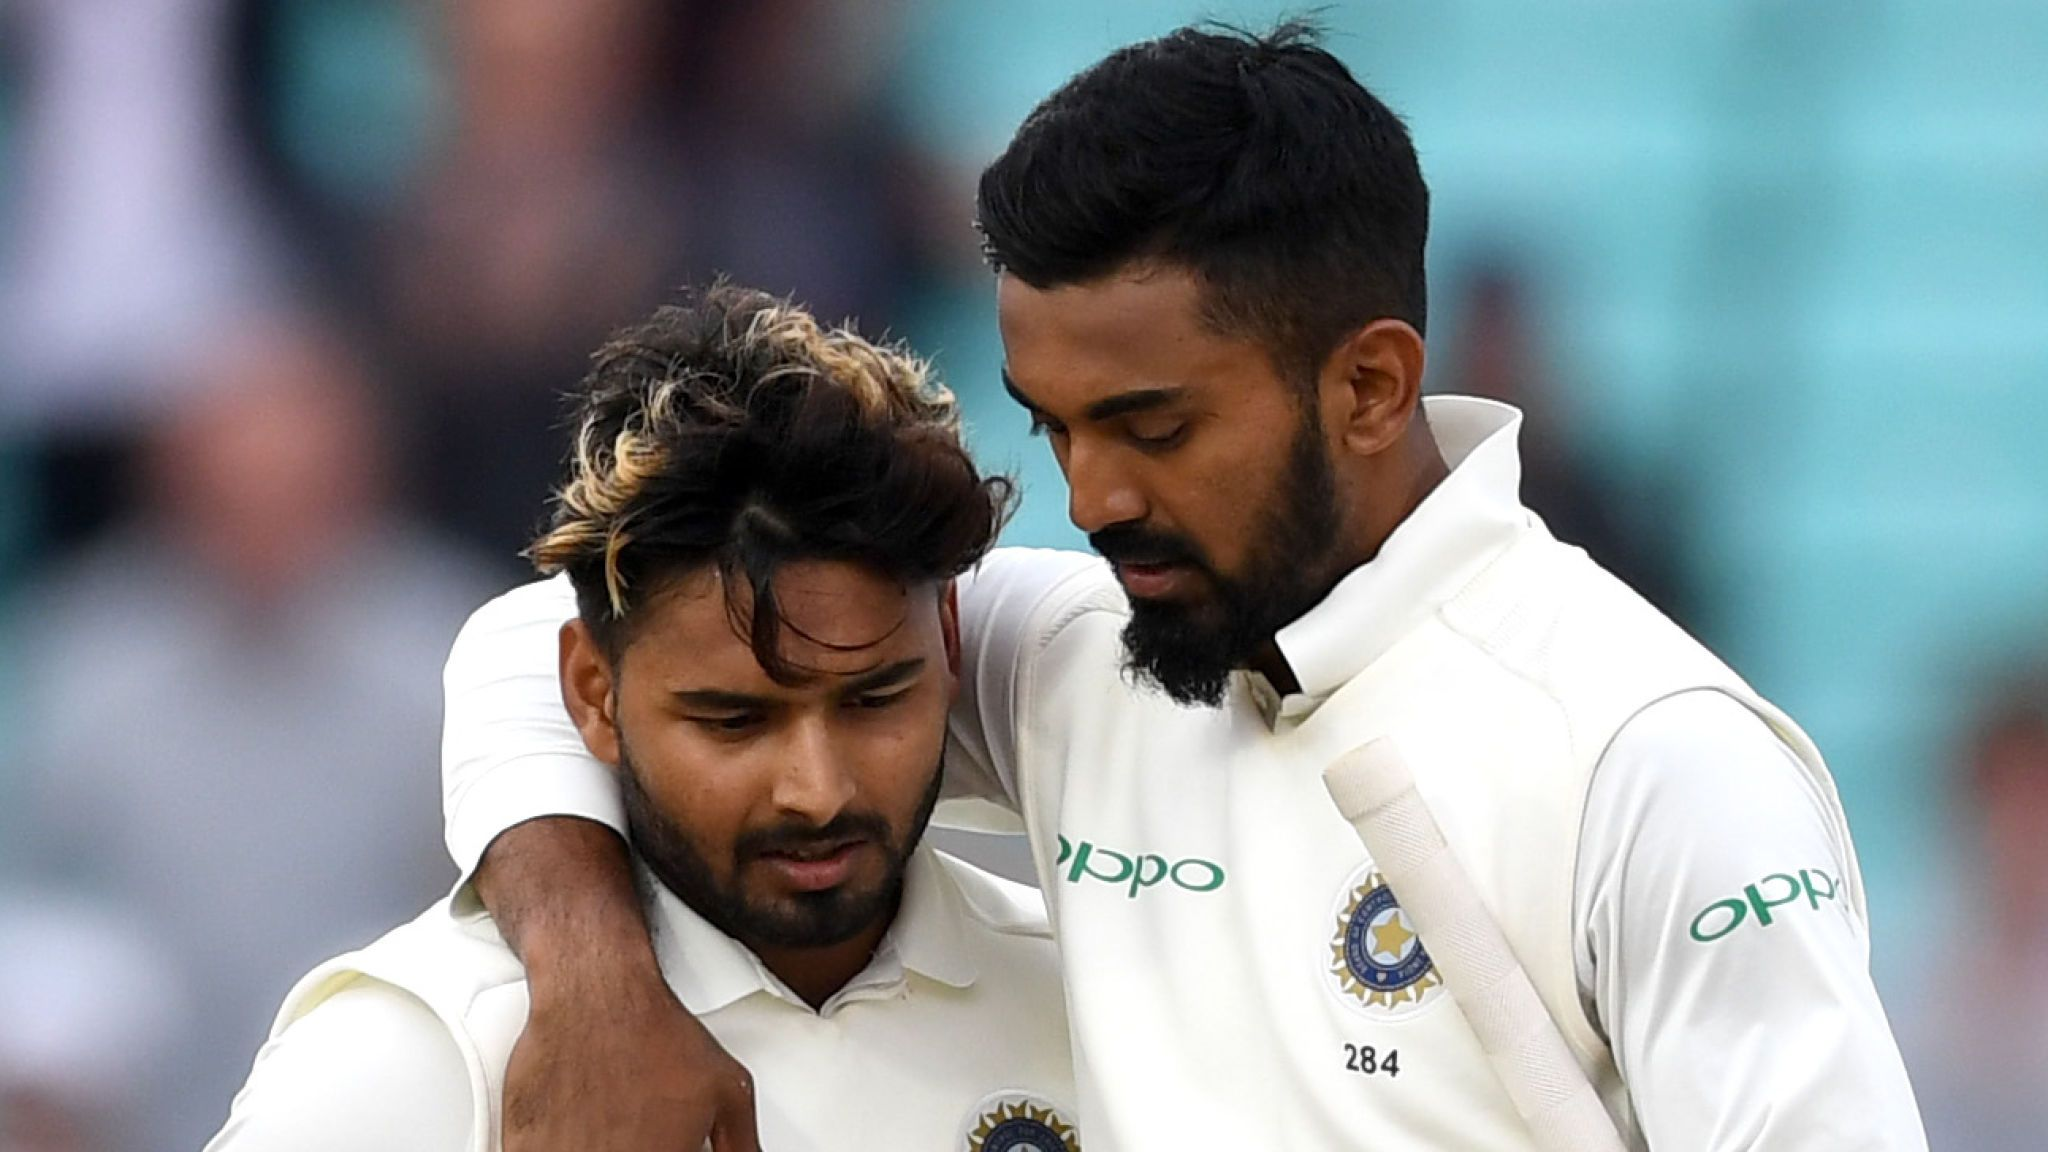 KL Rahul and Rishabh Pant together make an explosive duo | Image Source: Sky Sports